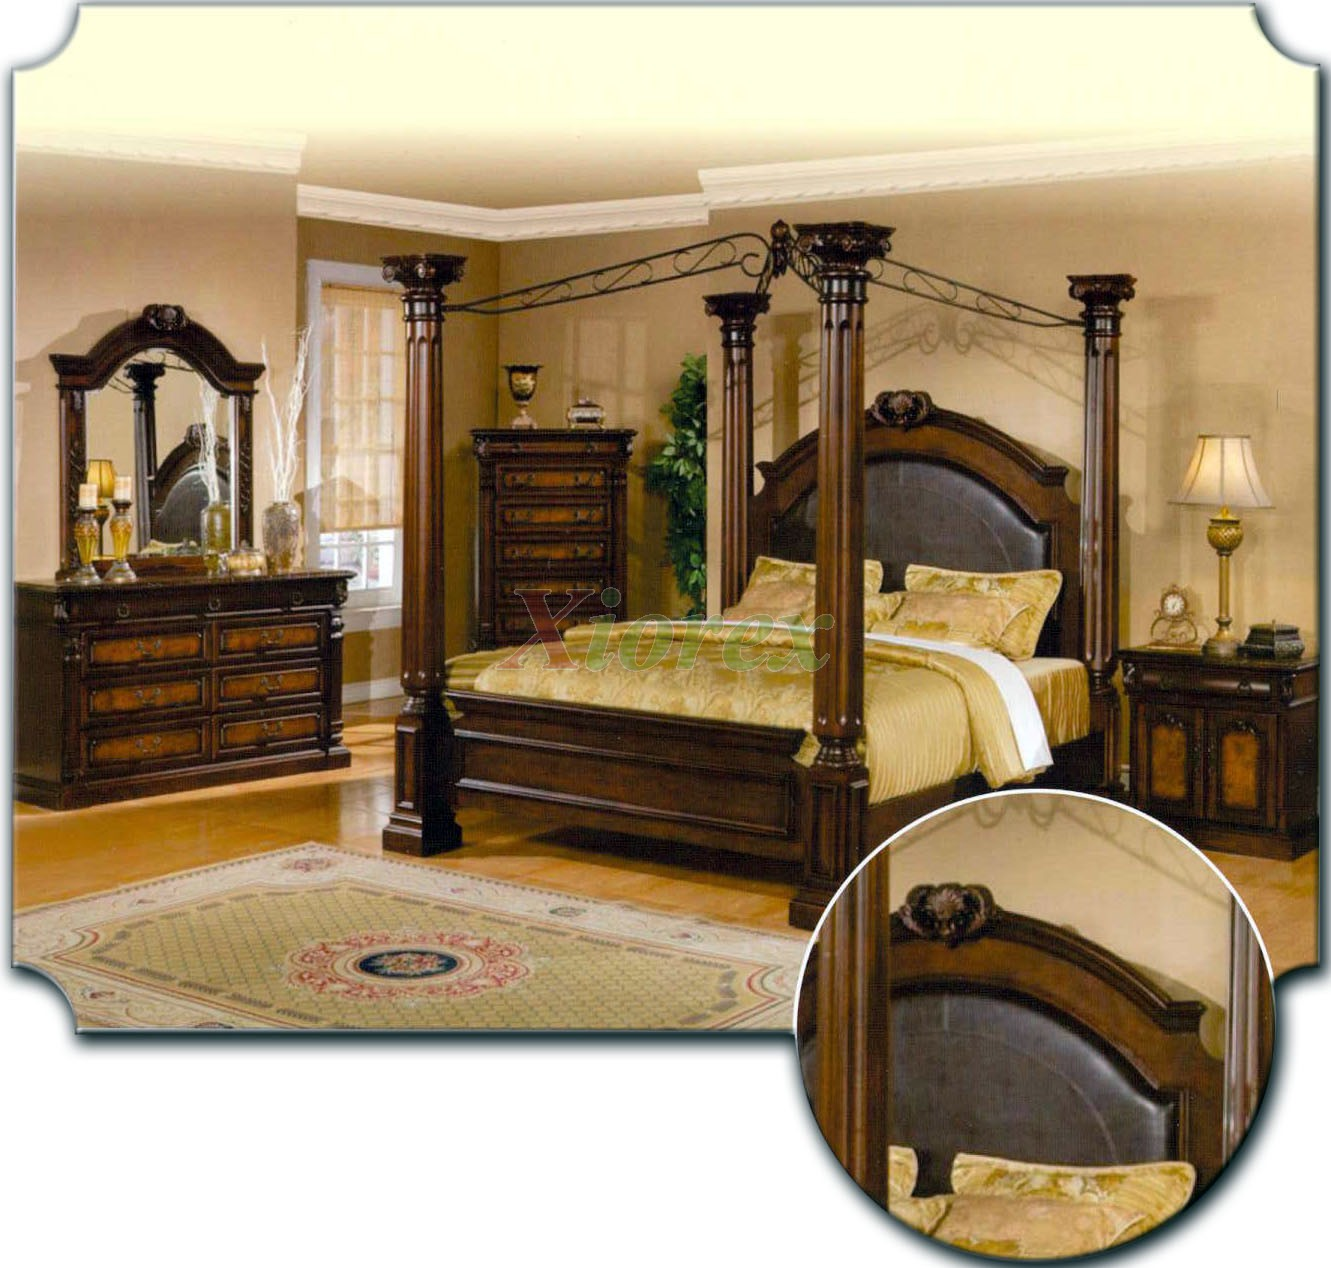 & Poster Bedroom Furniture Set with Leather Headboard u0026 Metal Canopy 103